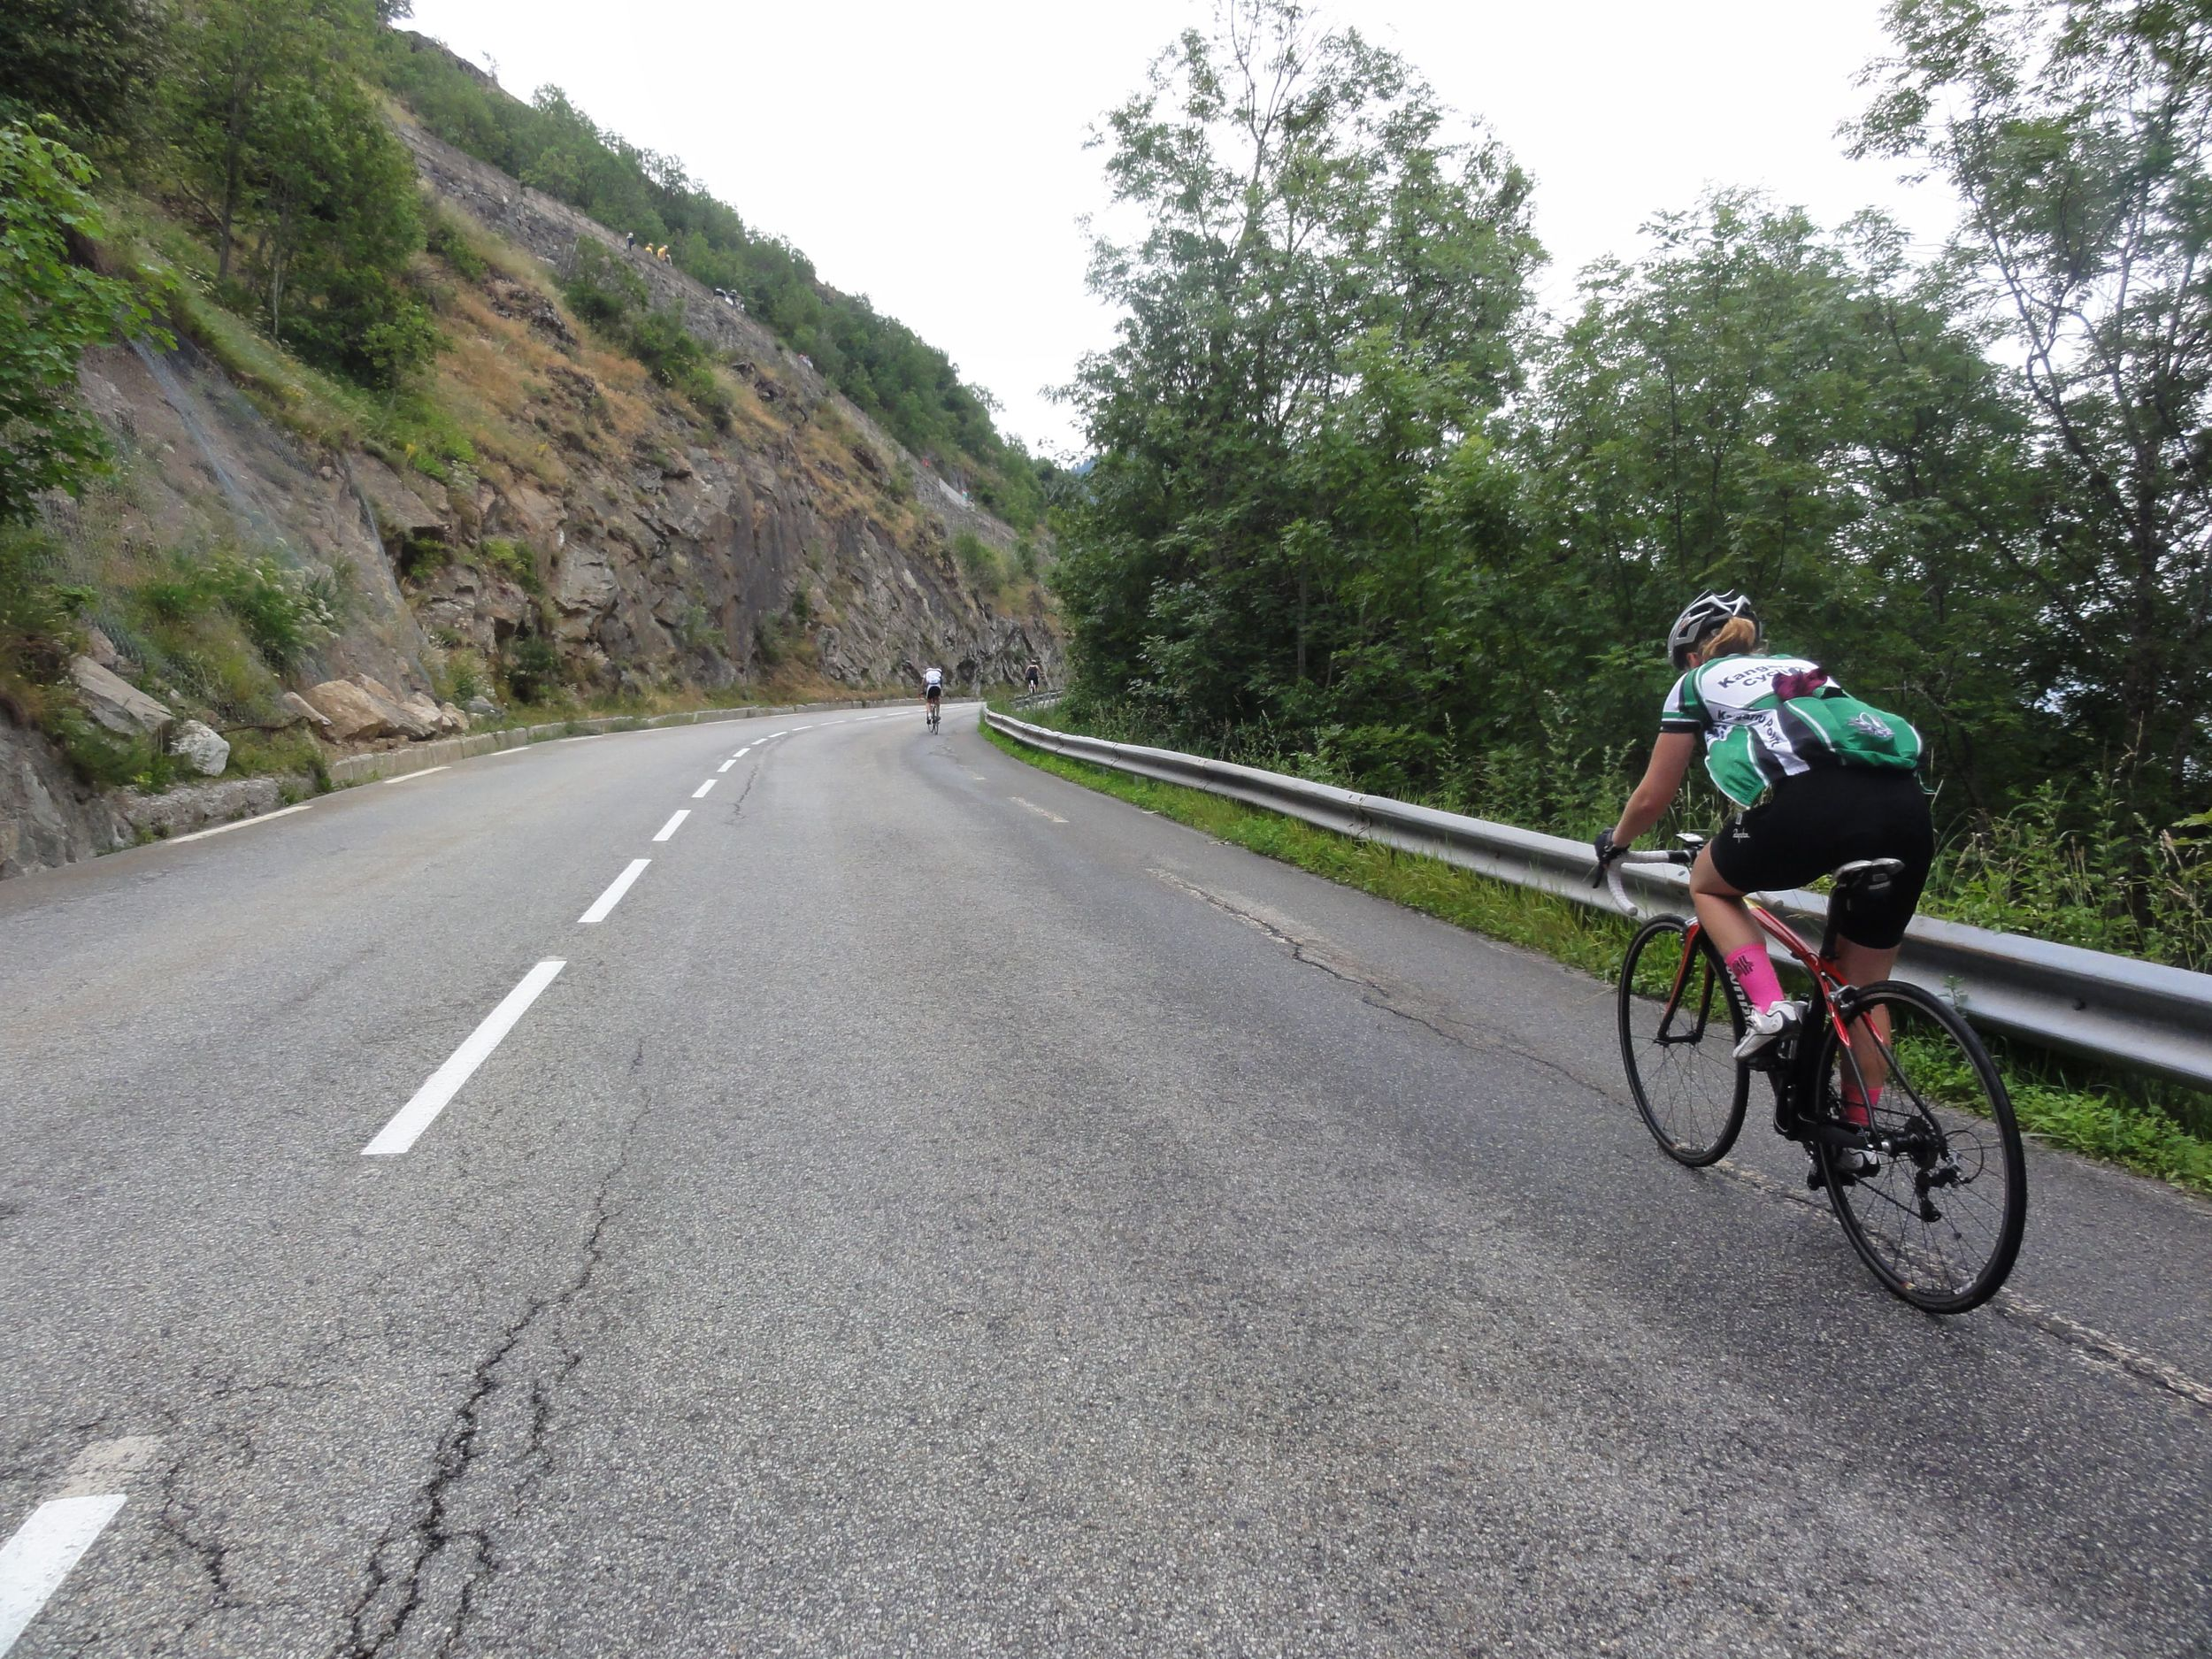 The climbs between the hairpins during the first half of the climb are deceptively steep.